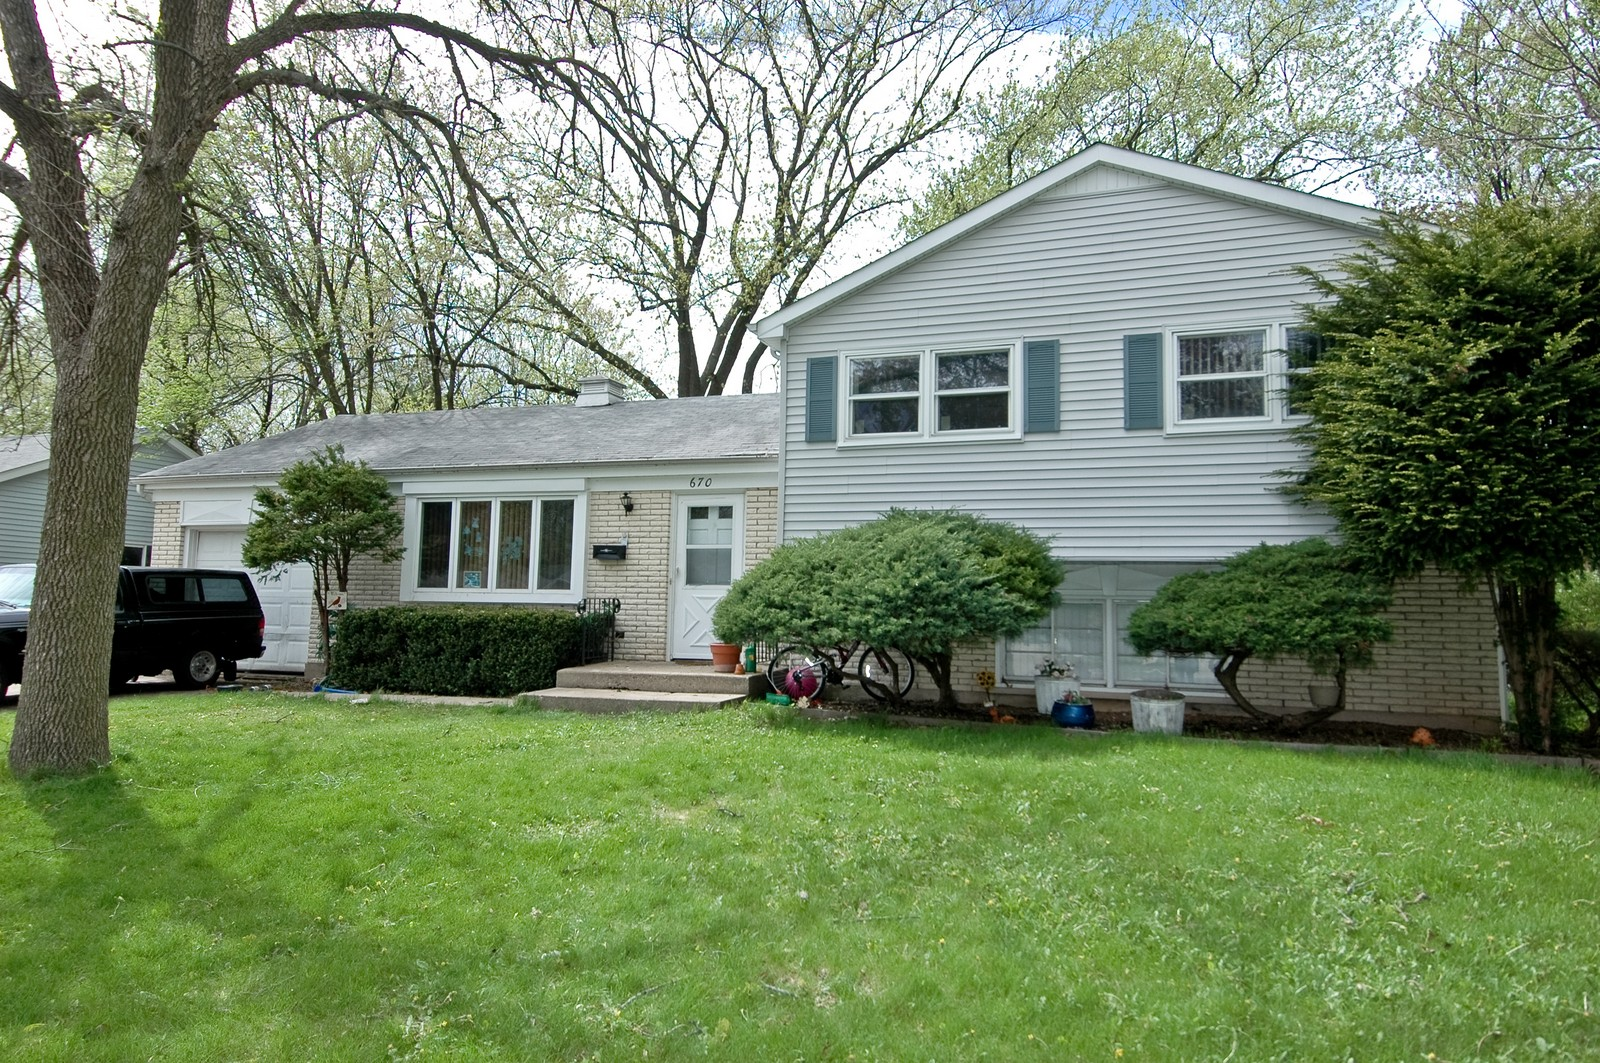 Real Estate Photography - 670 Coventry, Crystal Lake, IL, 60014 - Front View